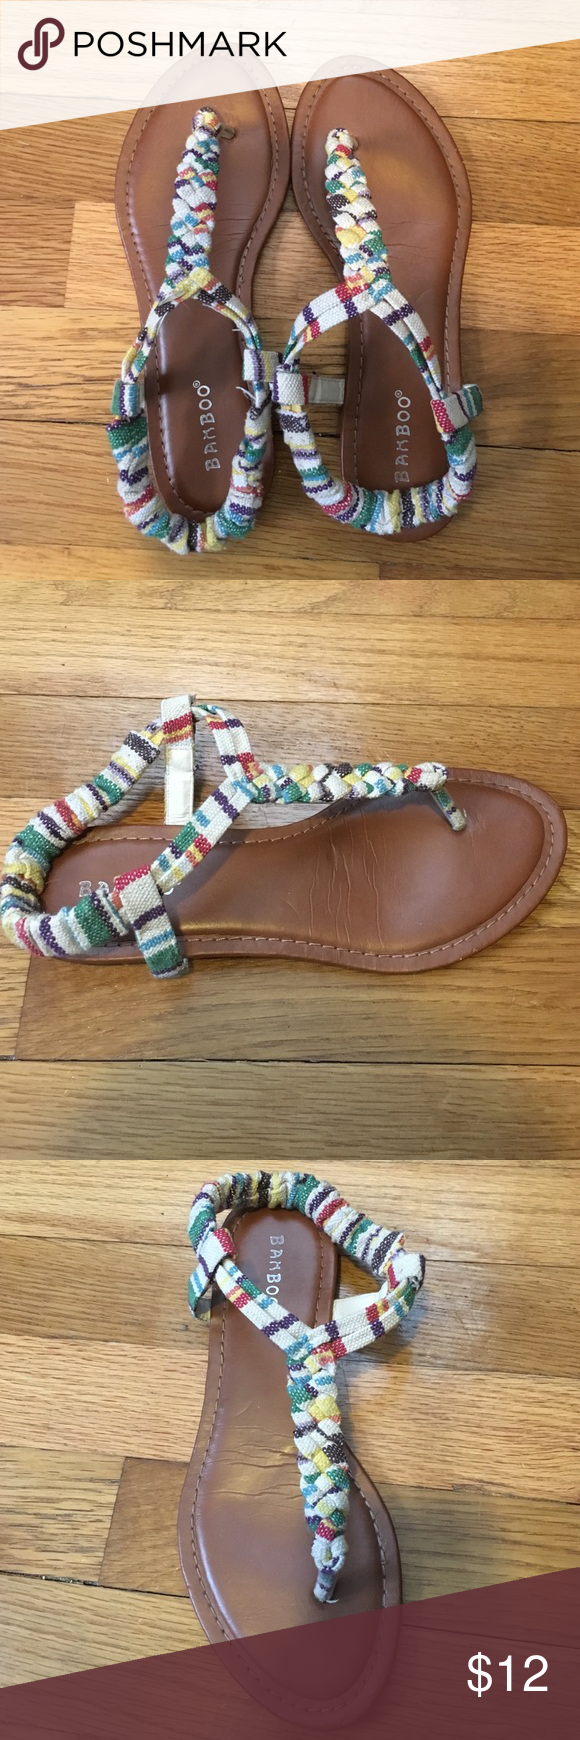 Awesome Woven Sandals! Striped rainbow and cream fabric braided together creating a sturdy, fashionable sandal. Worn once, only sign of wear on the bottom of the shoes as pictured in the last image. Elastic heel strap adjusts to your foot making them very comfortable to wear for long periods of time! Charlotte Russe Shoes Sandals